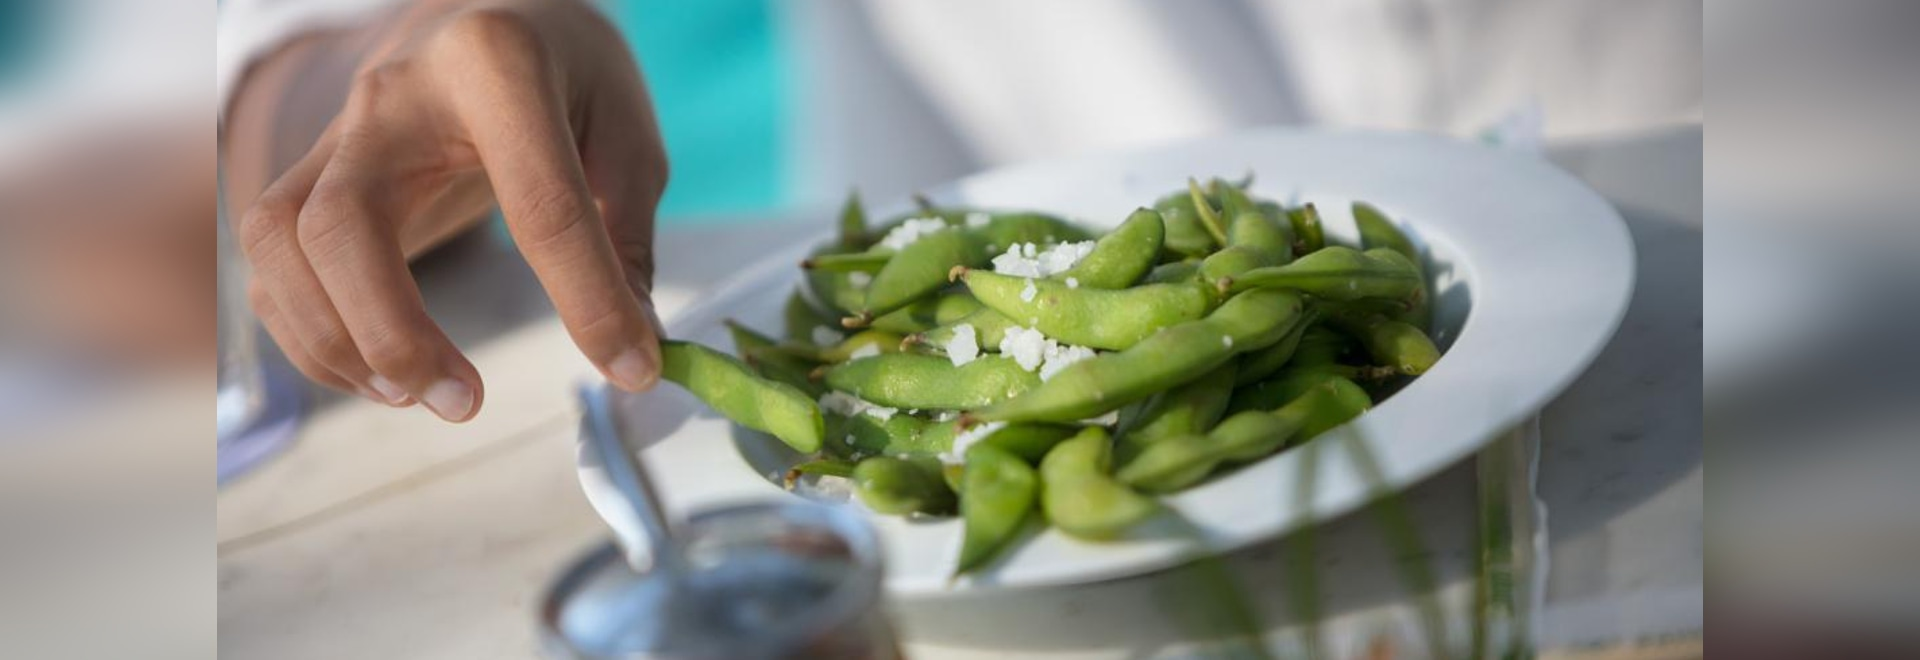 Soy protein and cholesterol: The debate rages on.